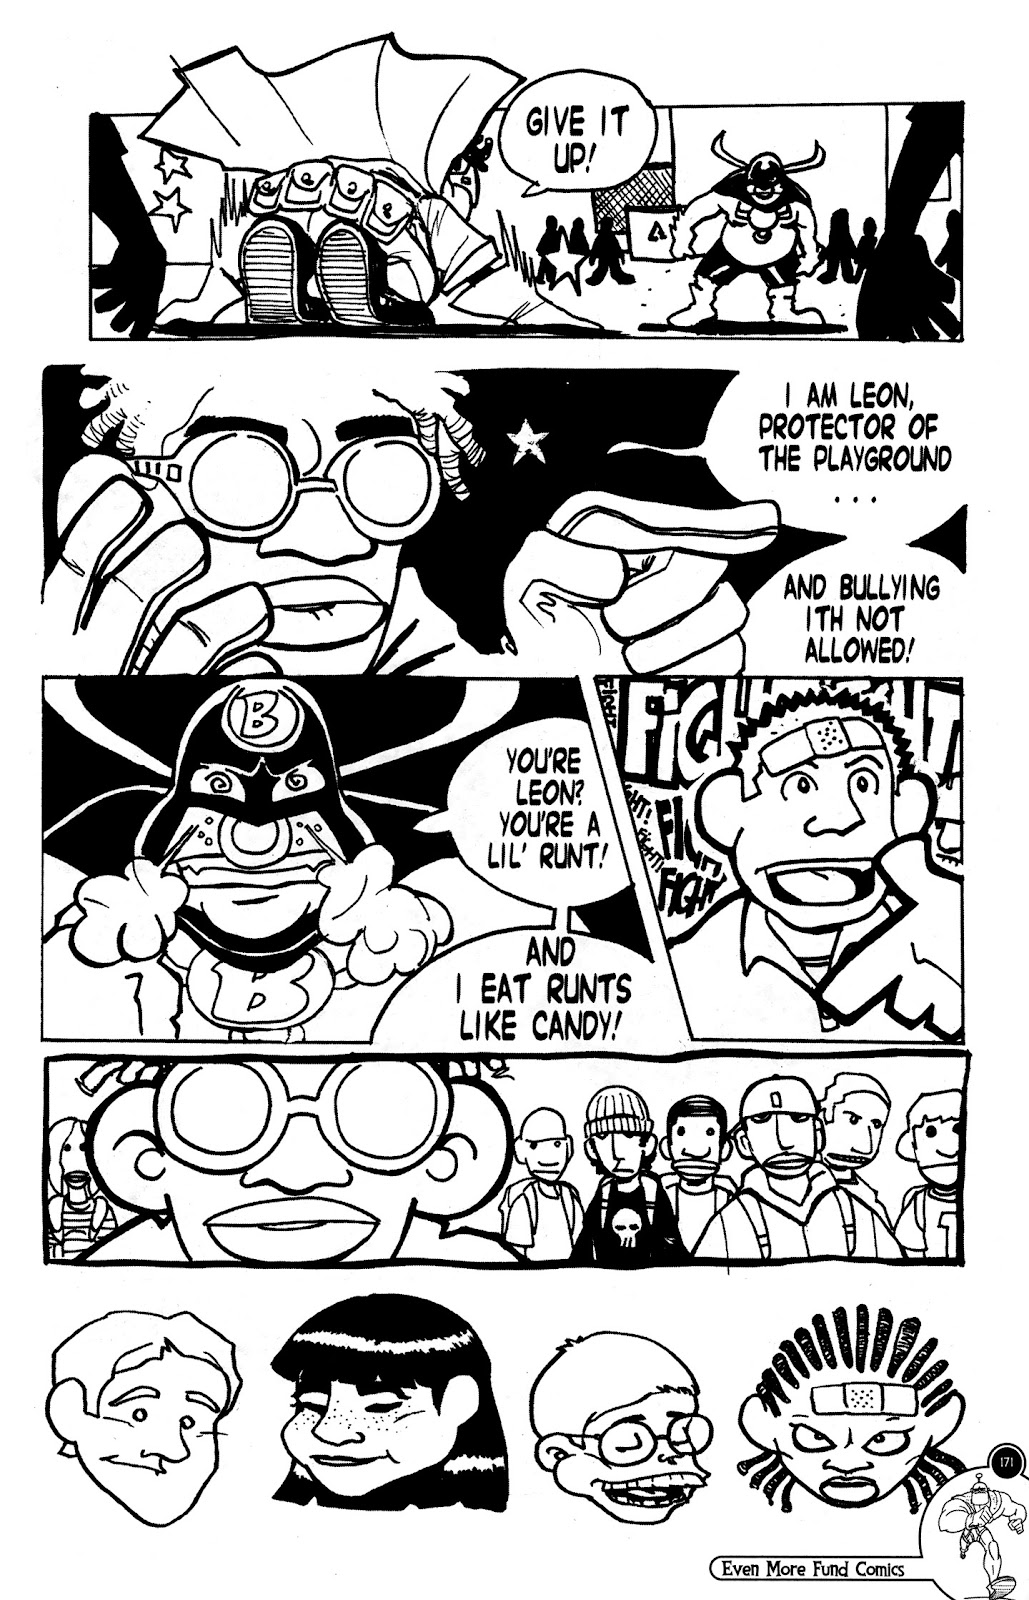 Read online Even More Fund Comics comic -  Issue # TPB (Part 2) - 74